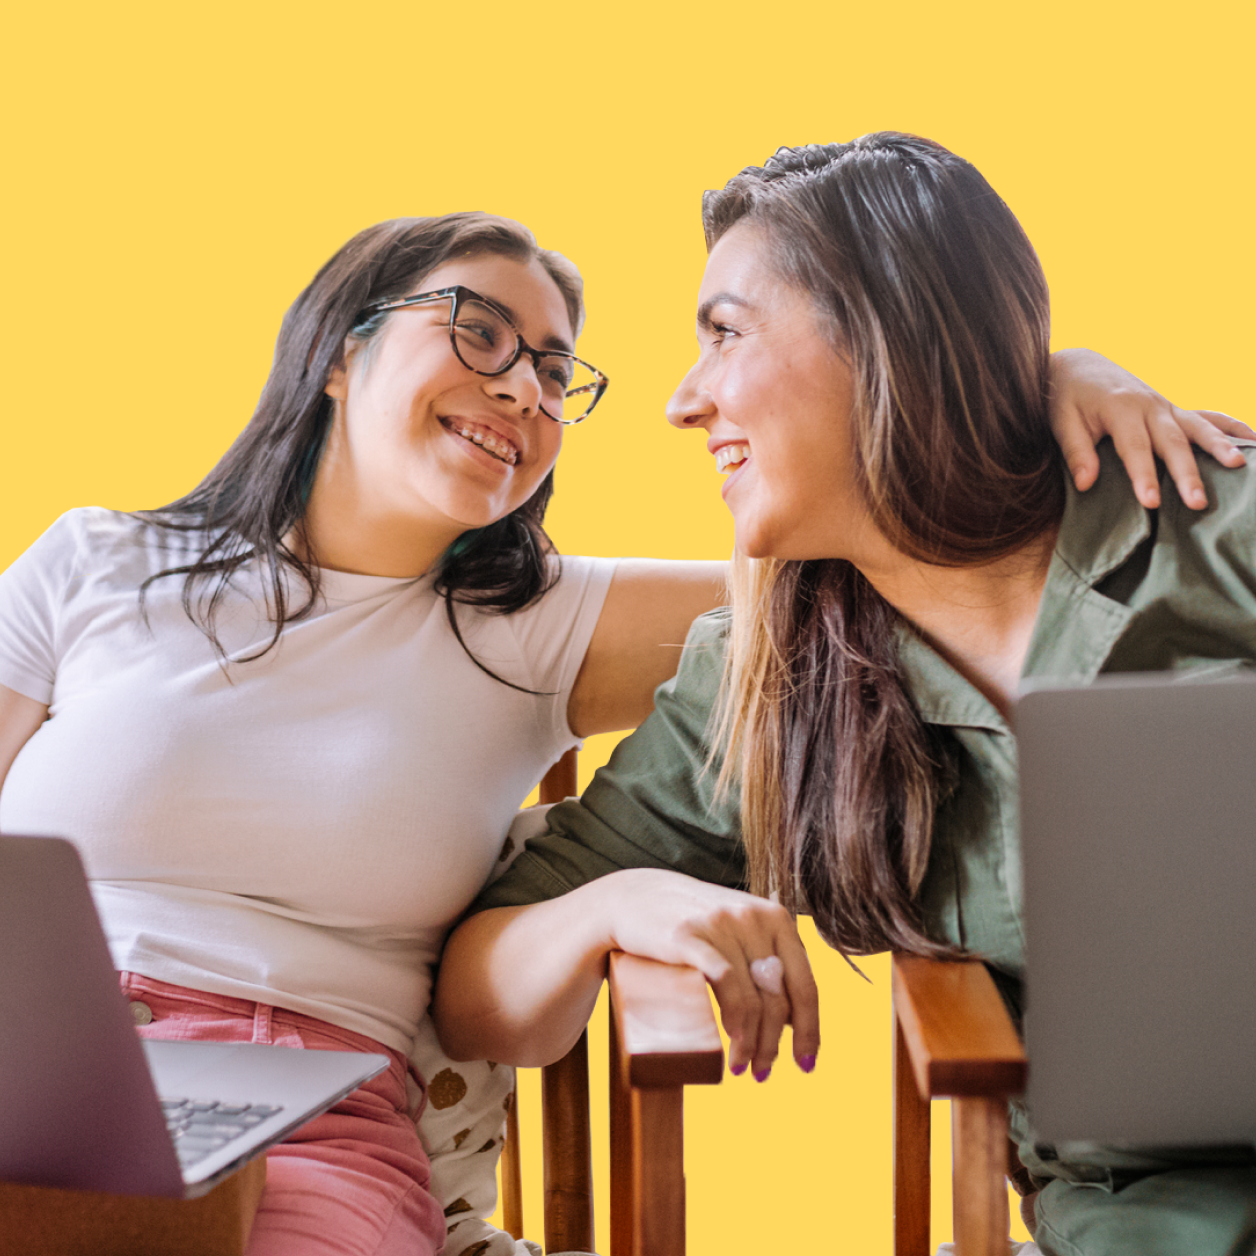 Teenage girl and mom with laptops laughing together, girl's arm around her mother